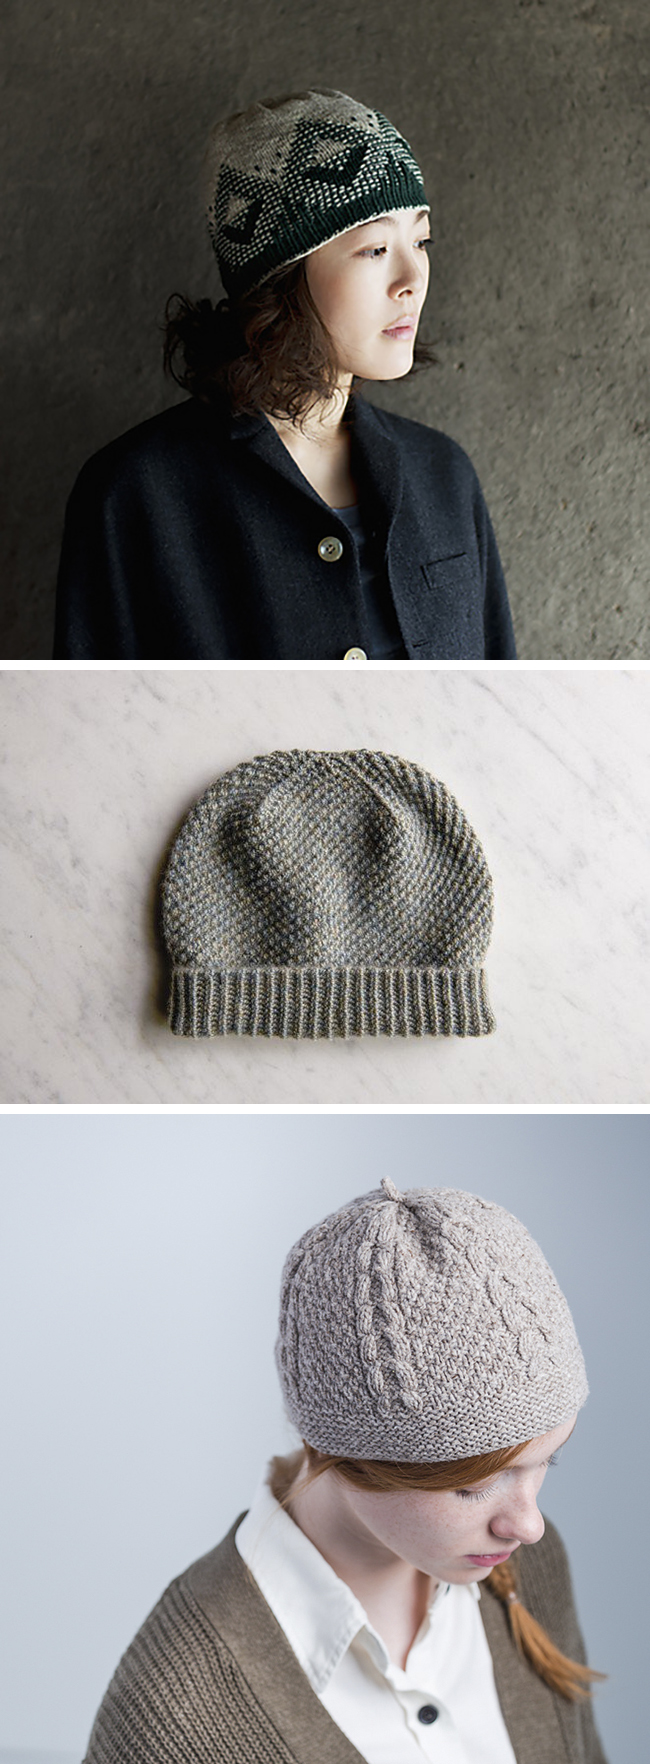 New Favorites: The solace of hats